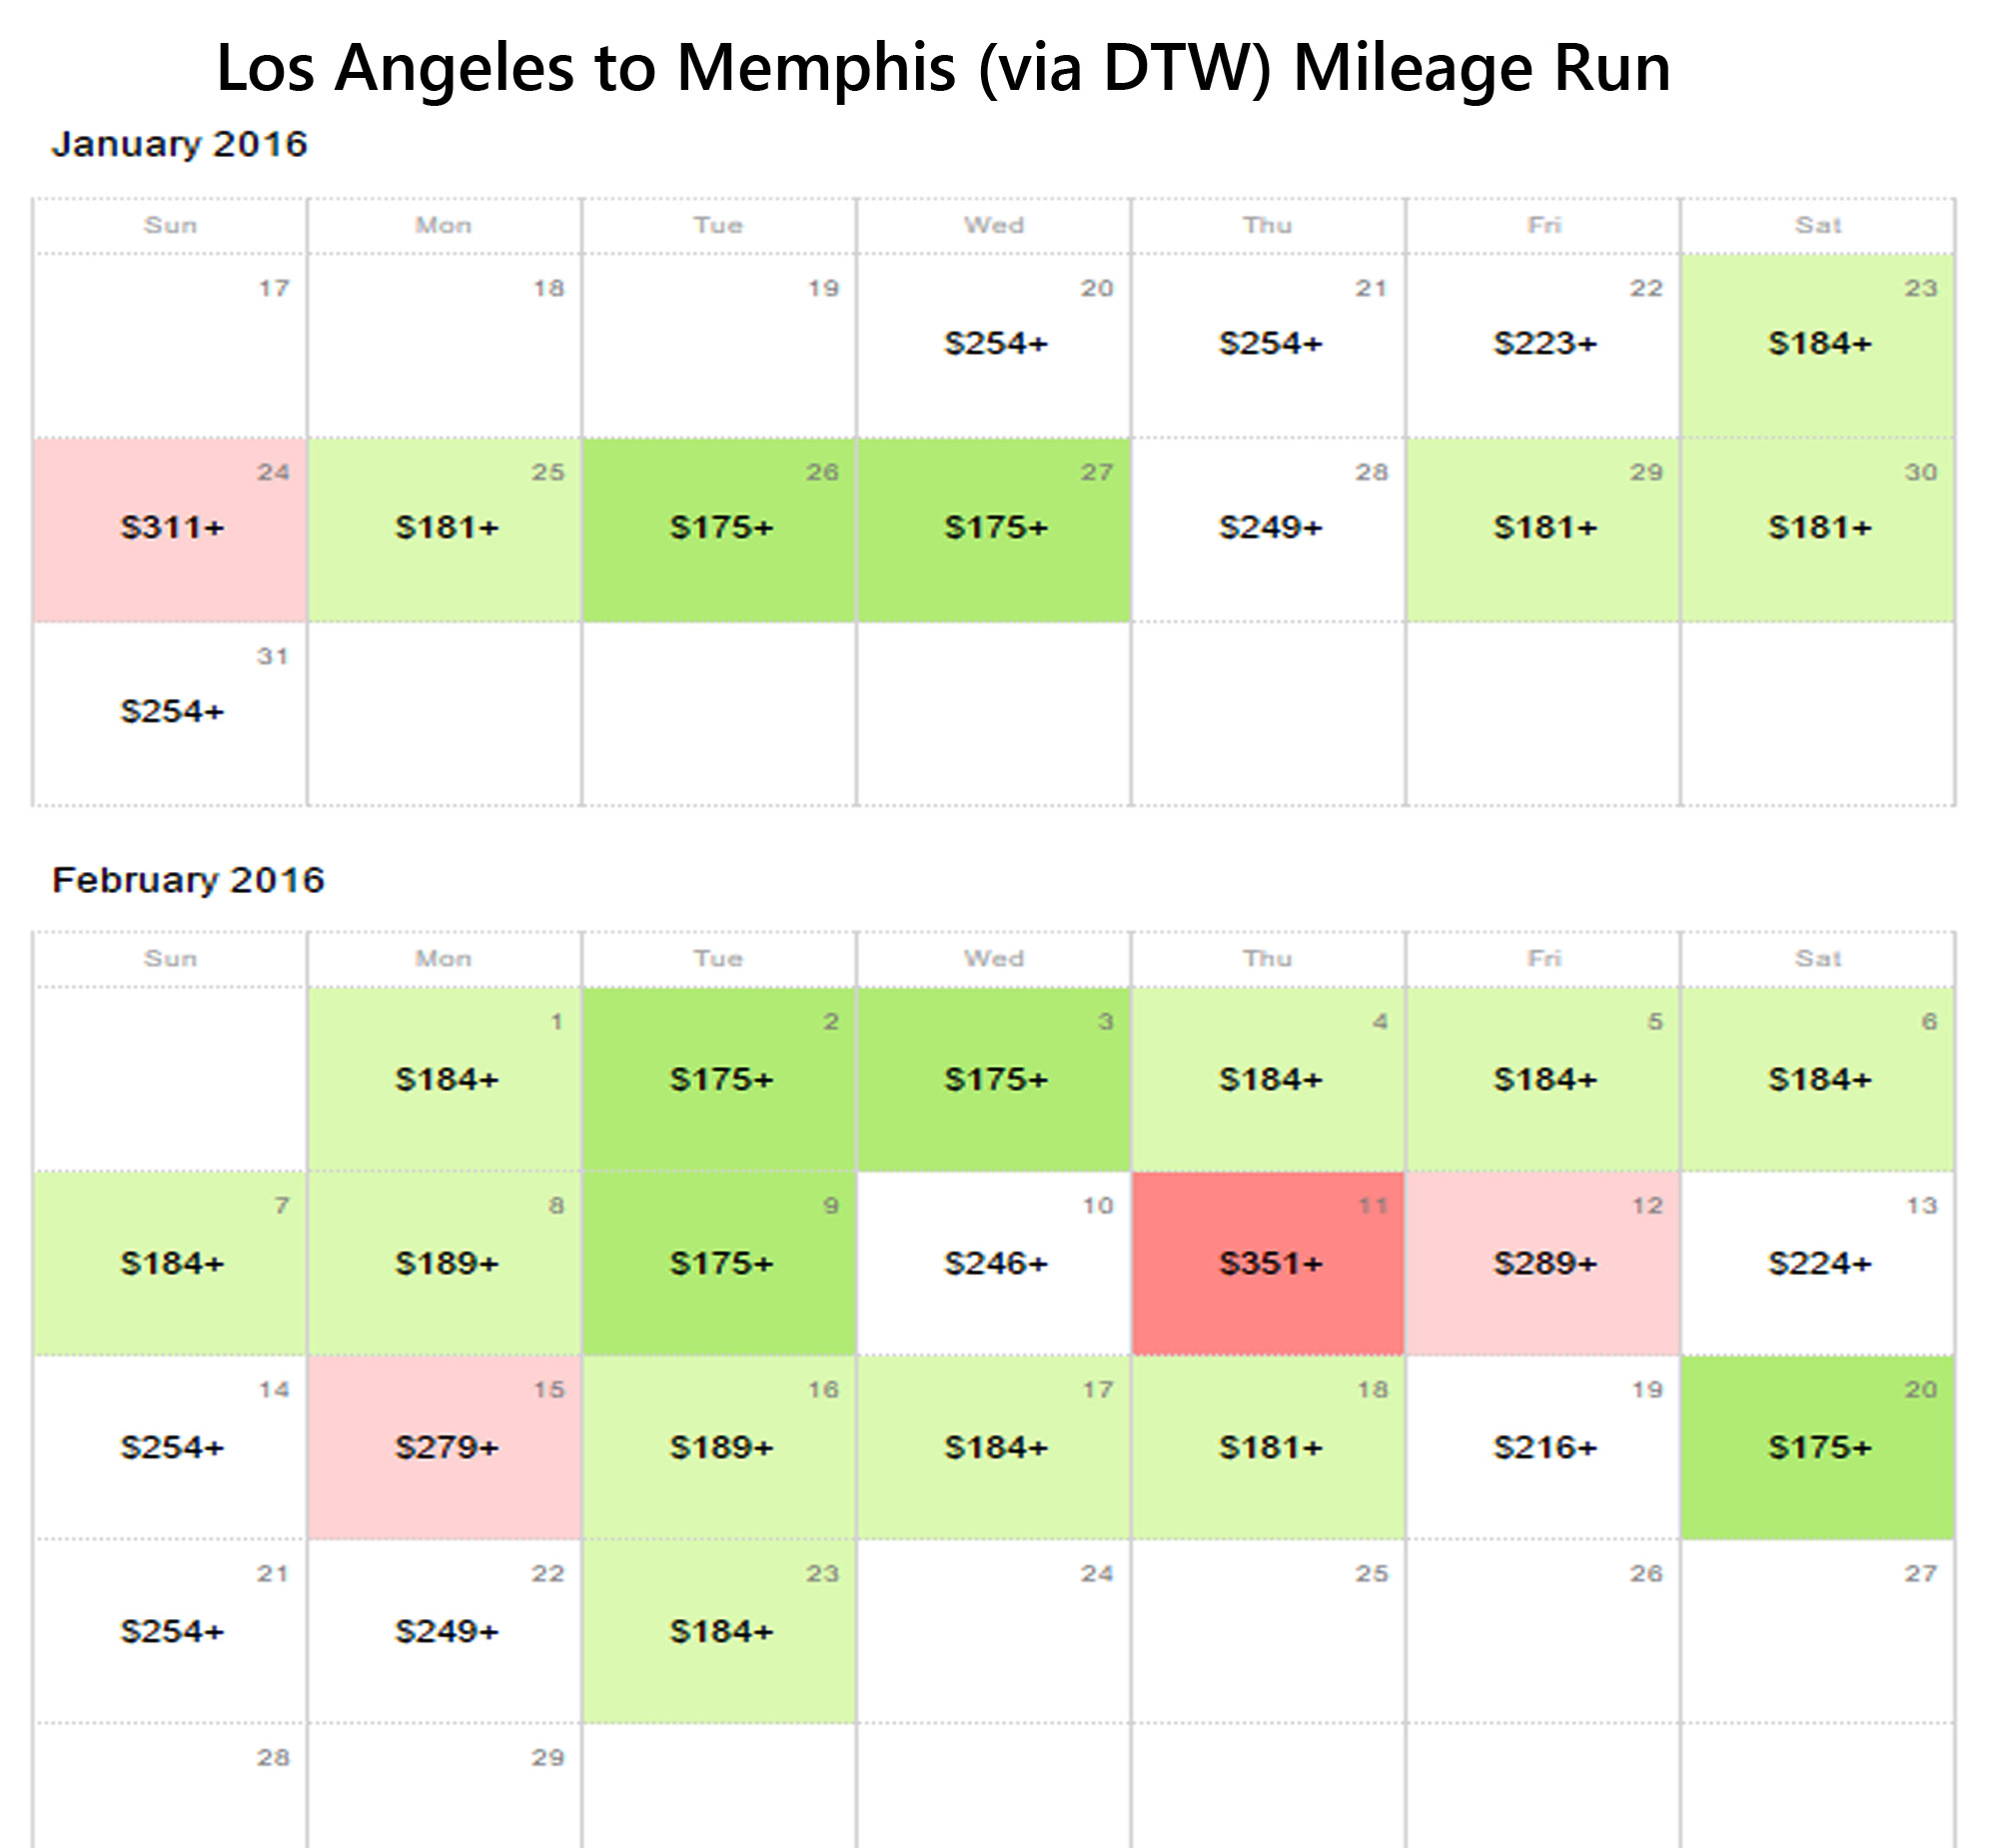 los angeles to memphis 5178 mqms delta elite mileage run 189 36cpm rens pointsrens points